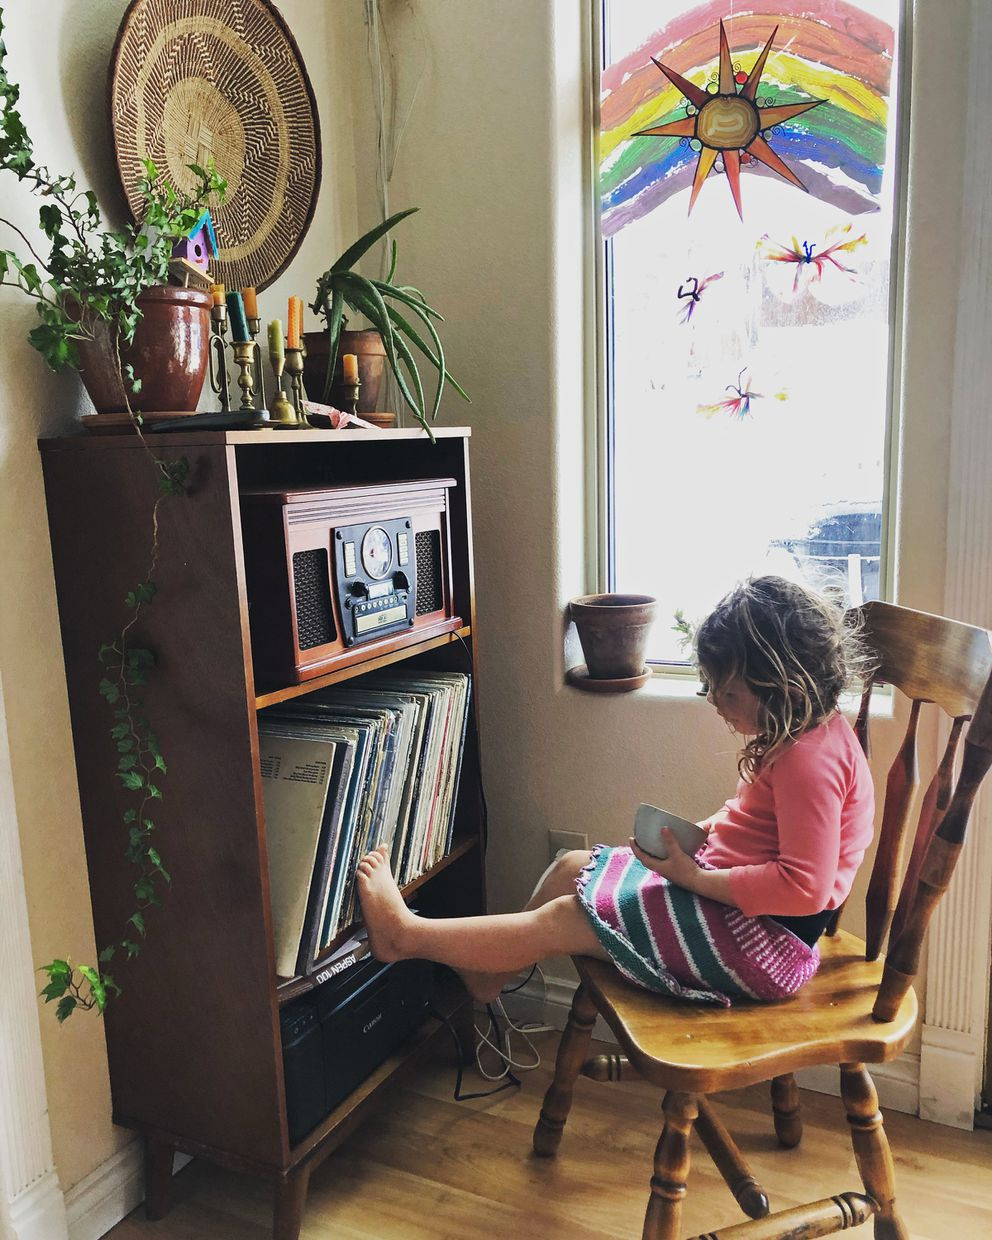 In this April 2, 2020, photo provided by Cassy Quinlan, 4-year-old Polly Fraley listens in Homer, Alaska, to children's stories being read on air at local radio station KBBI by librarian Claudia Haines. The library teamed up with the station to continue its popular story hour for preschoolers after it closed to the public amid coronavirus concerns. It's among ways the nation's libraries are dealing with closures amid coronavirus concerns. (Cassy Quinlan via AP)